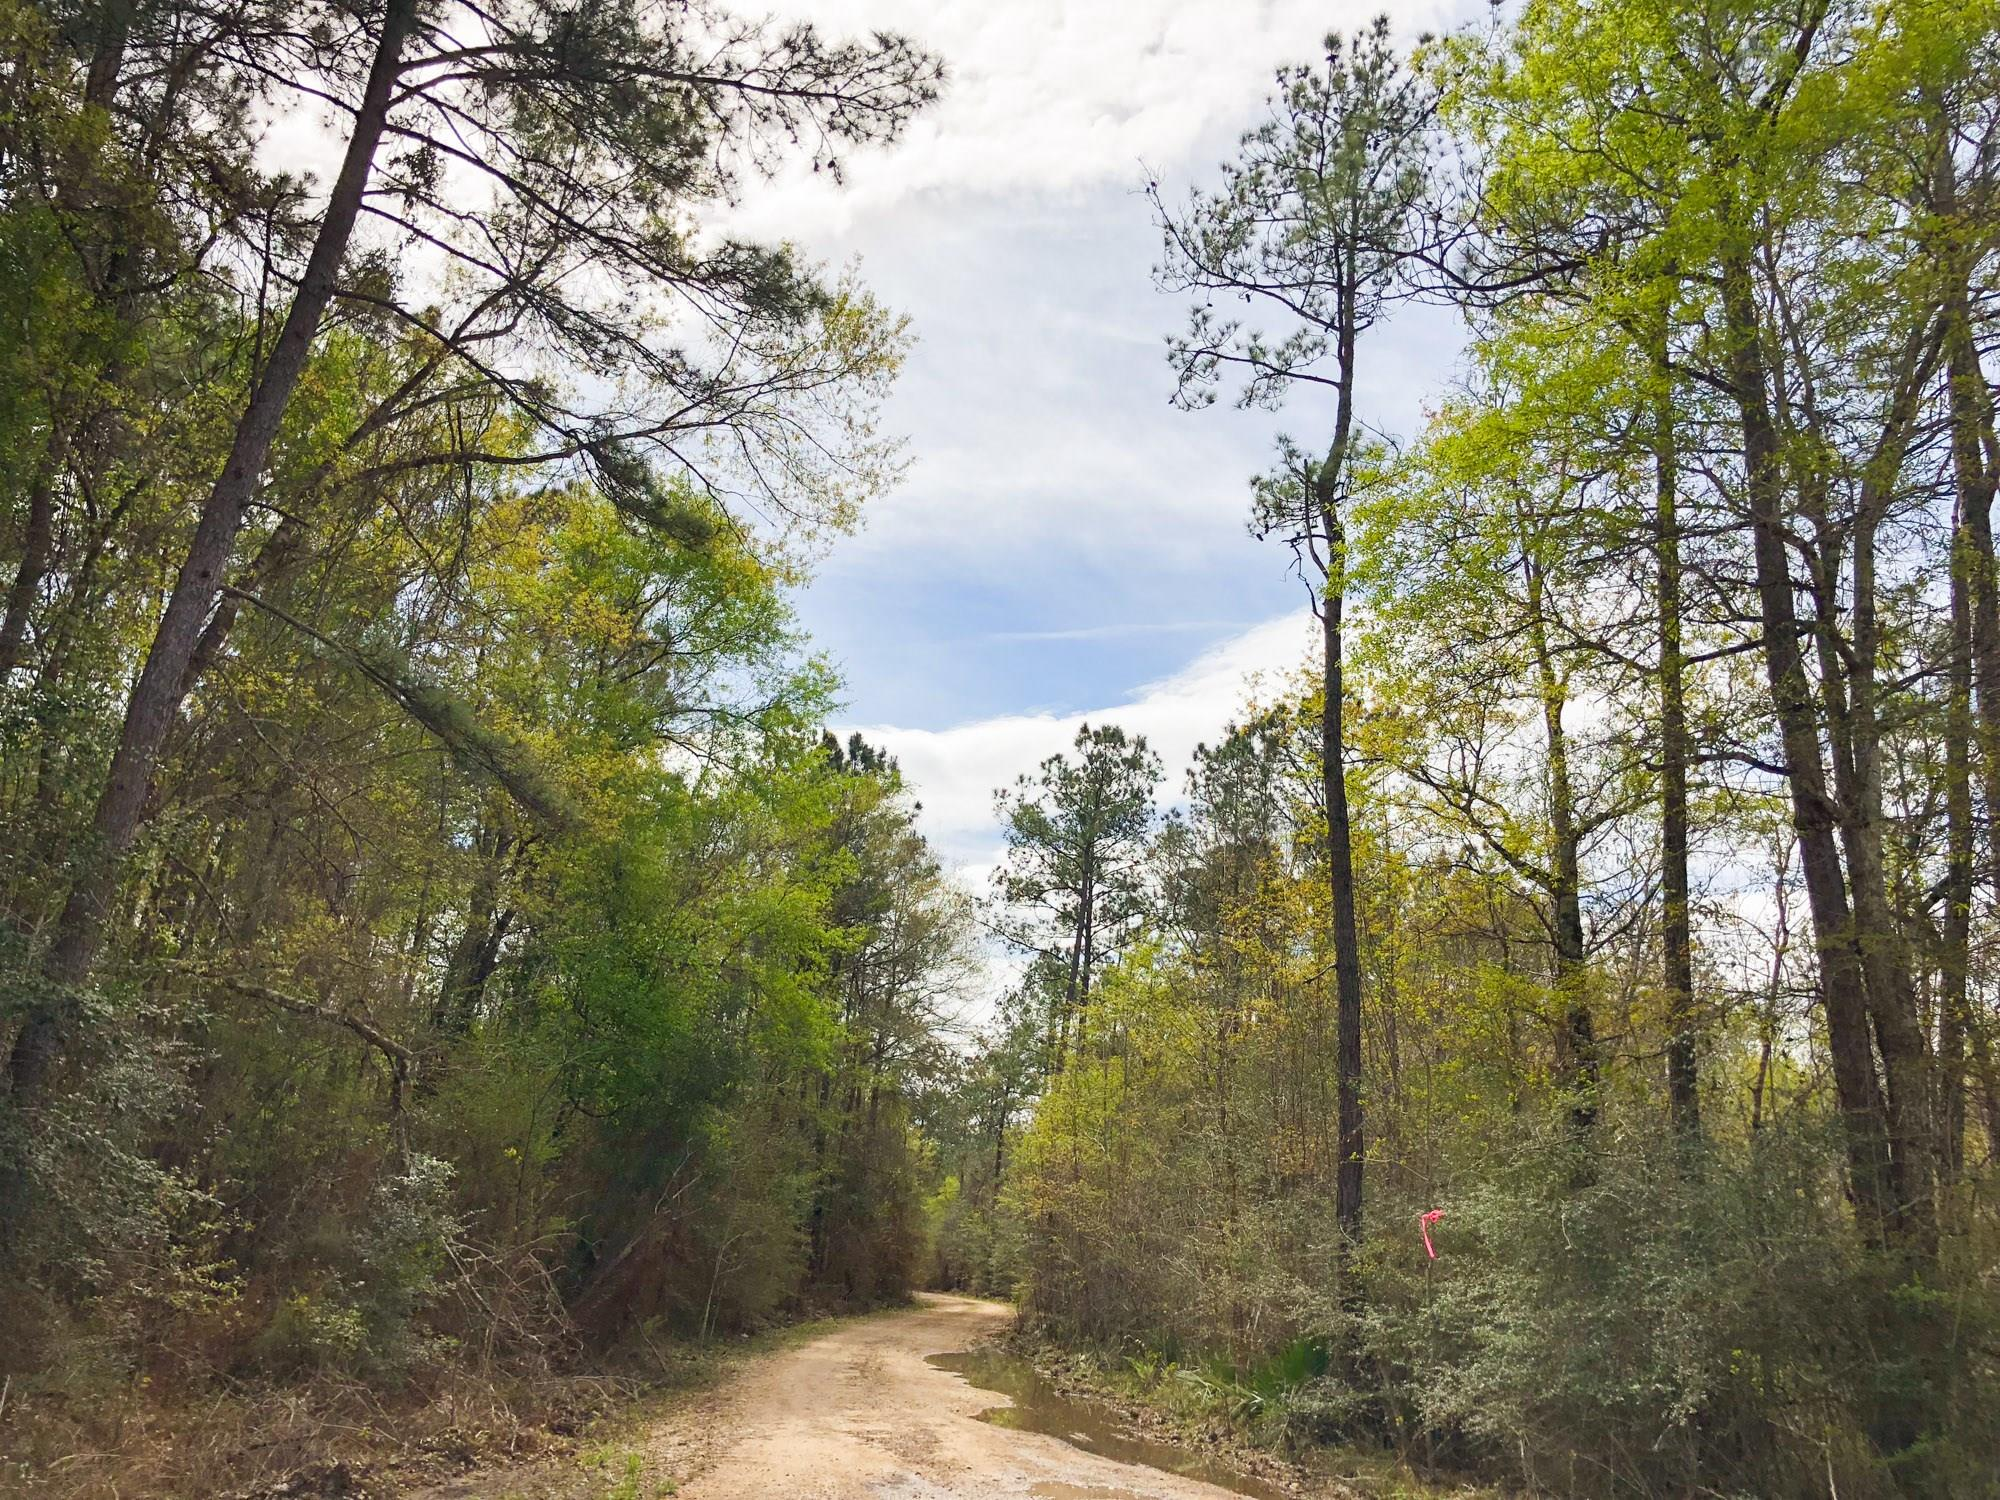 0000 CR 3132 Property Photo - Mauriceville, TX real estate listing